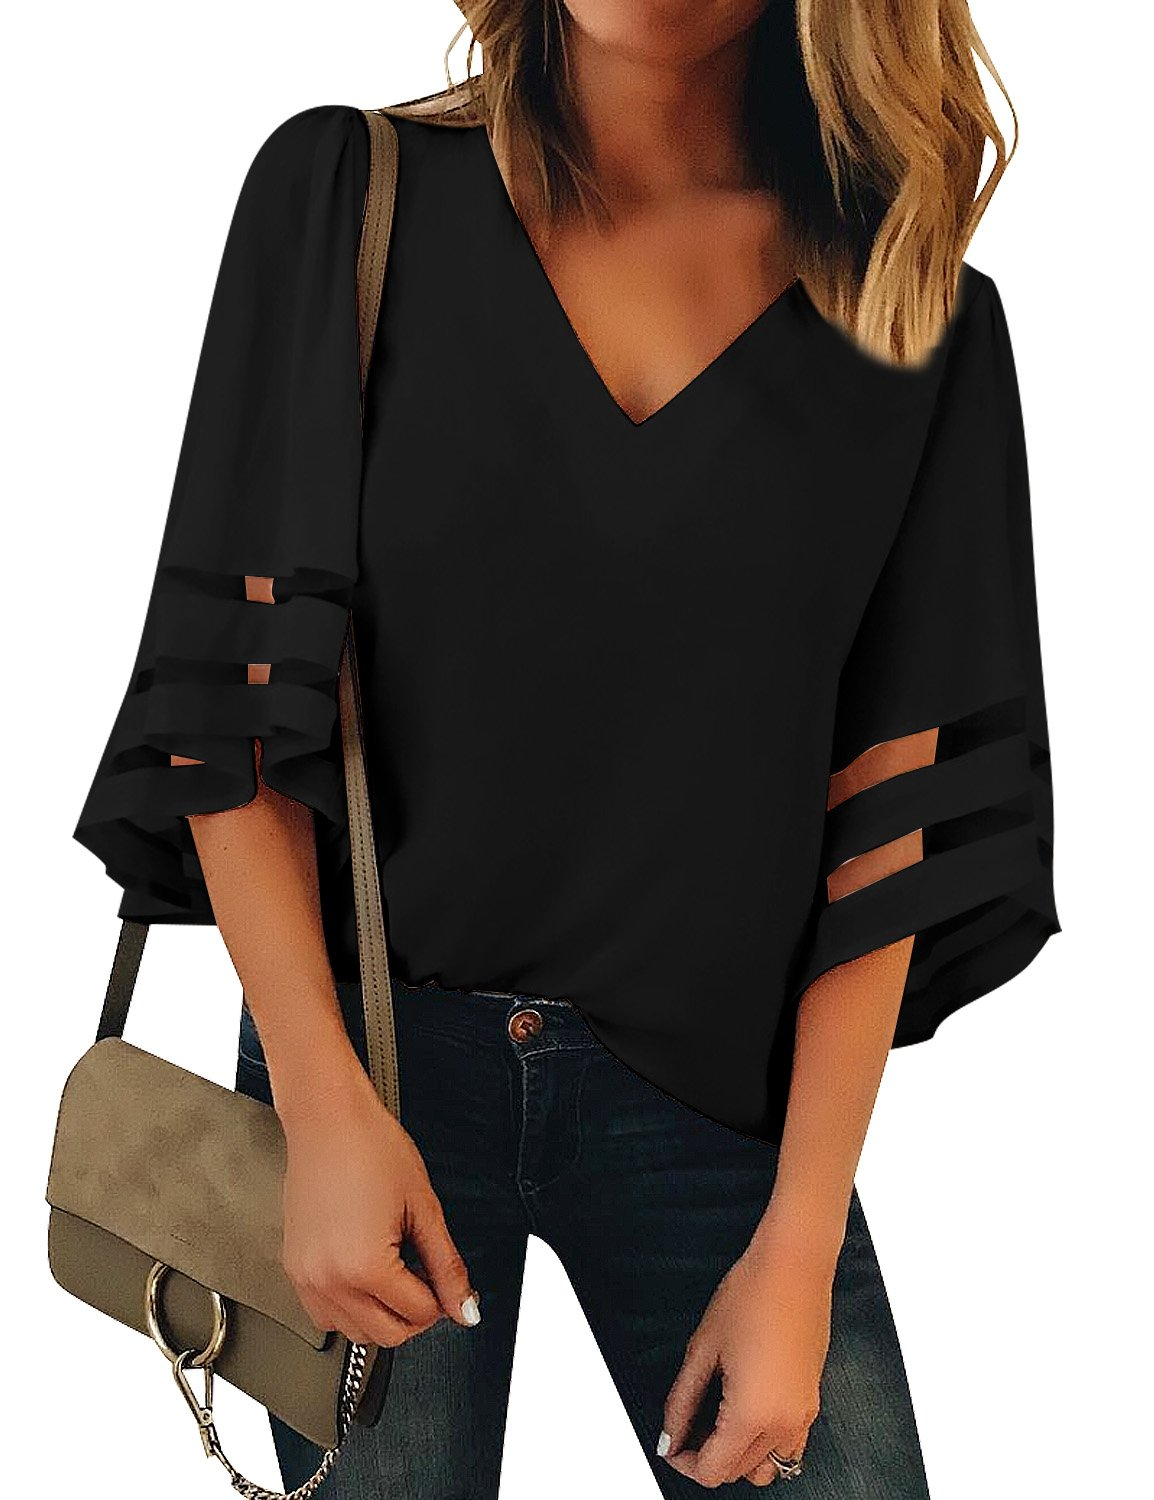 LookbookStore Women's Black V Neck Casual Mesh Panel Blouse 3/4 Bell Sleeve Solid Color Loose Top Shirt Size L(US 12-14) by LookbookStore